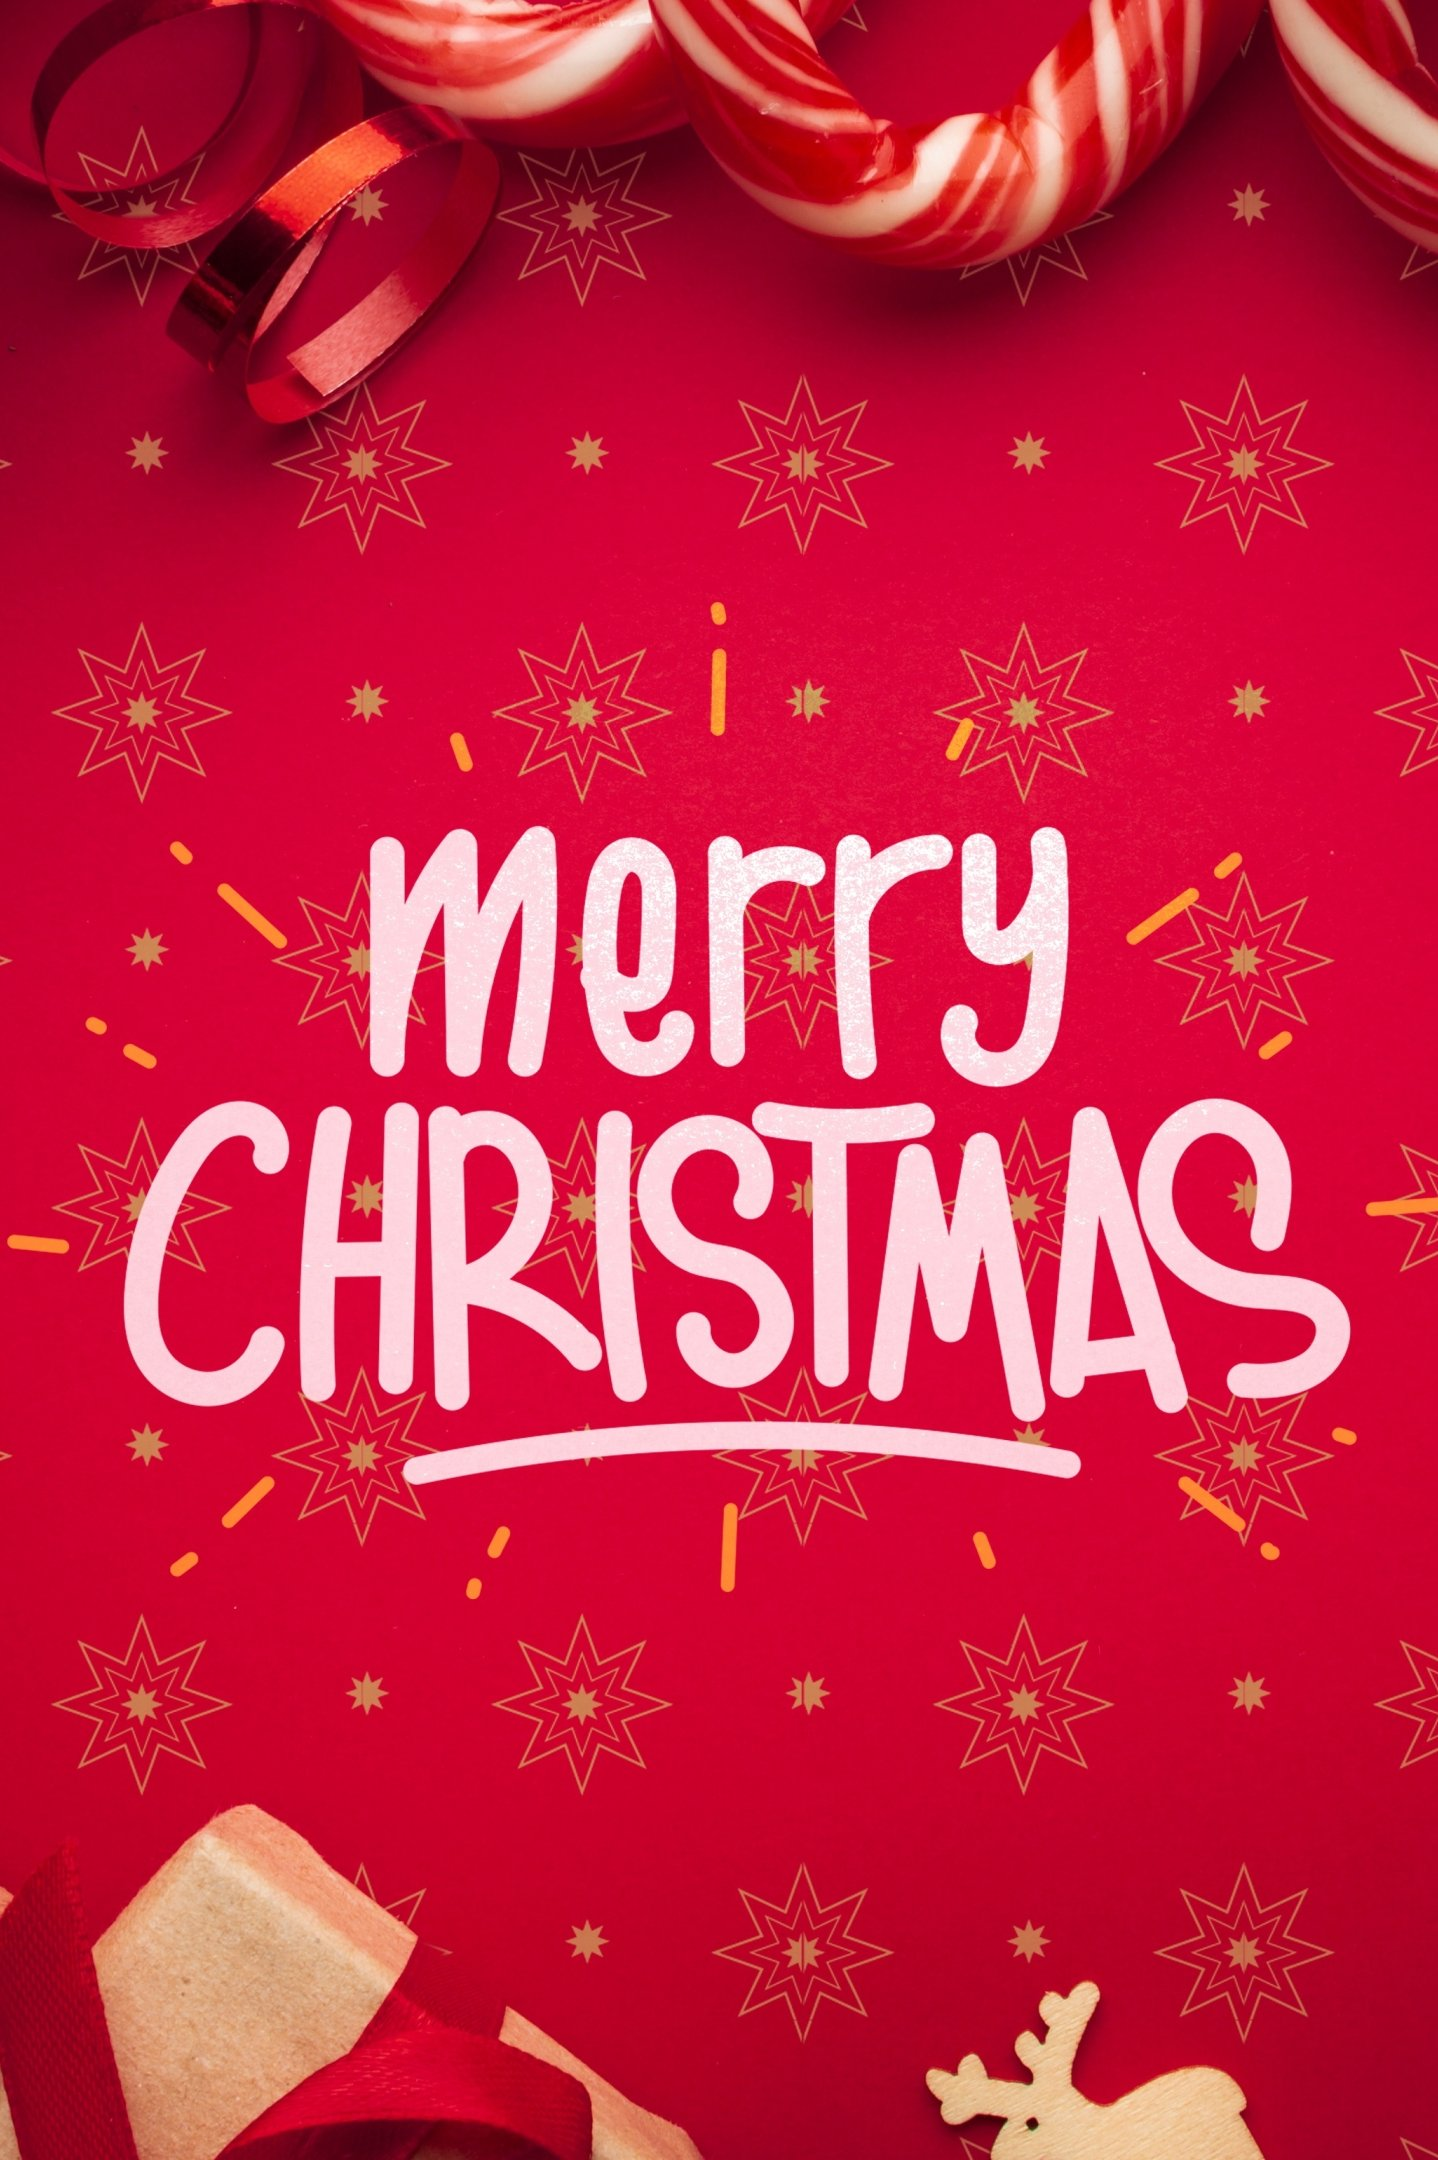 Merry Christmas iPhone Android Smartphone Wallpaper 2160p